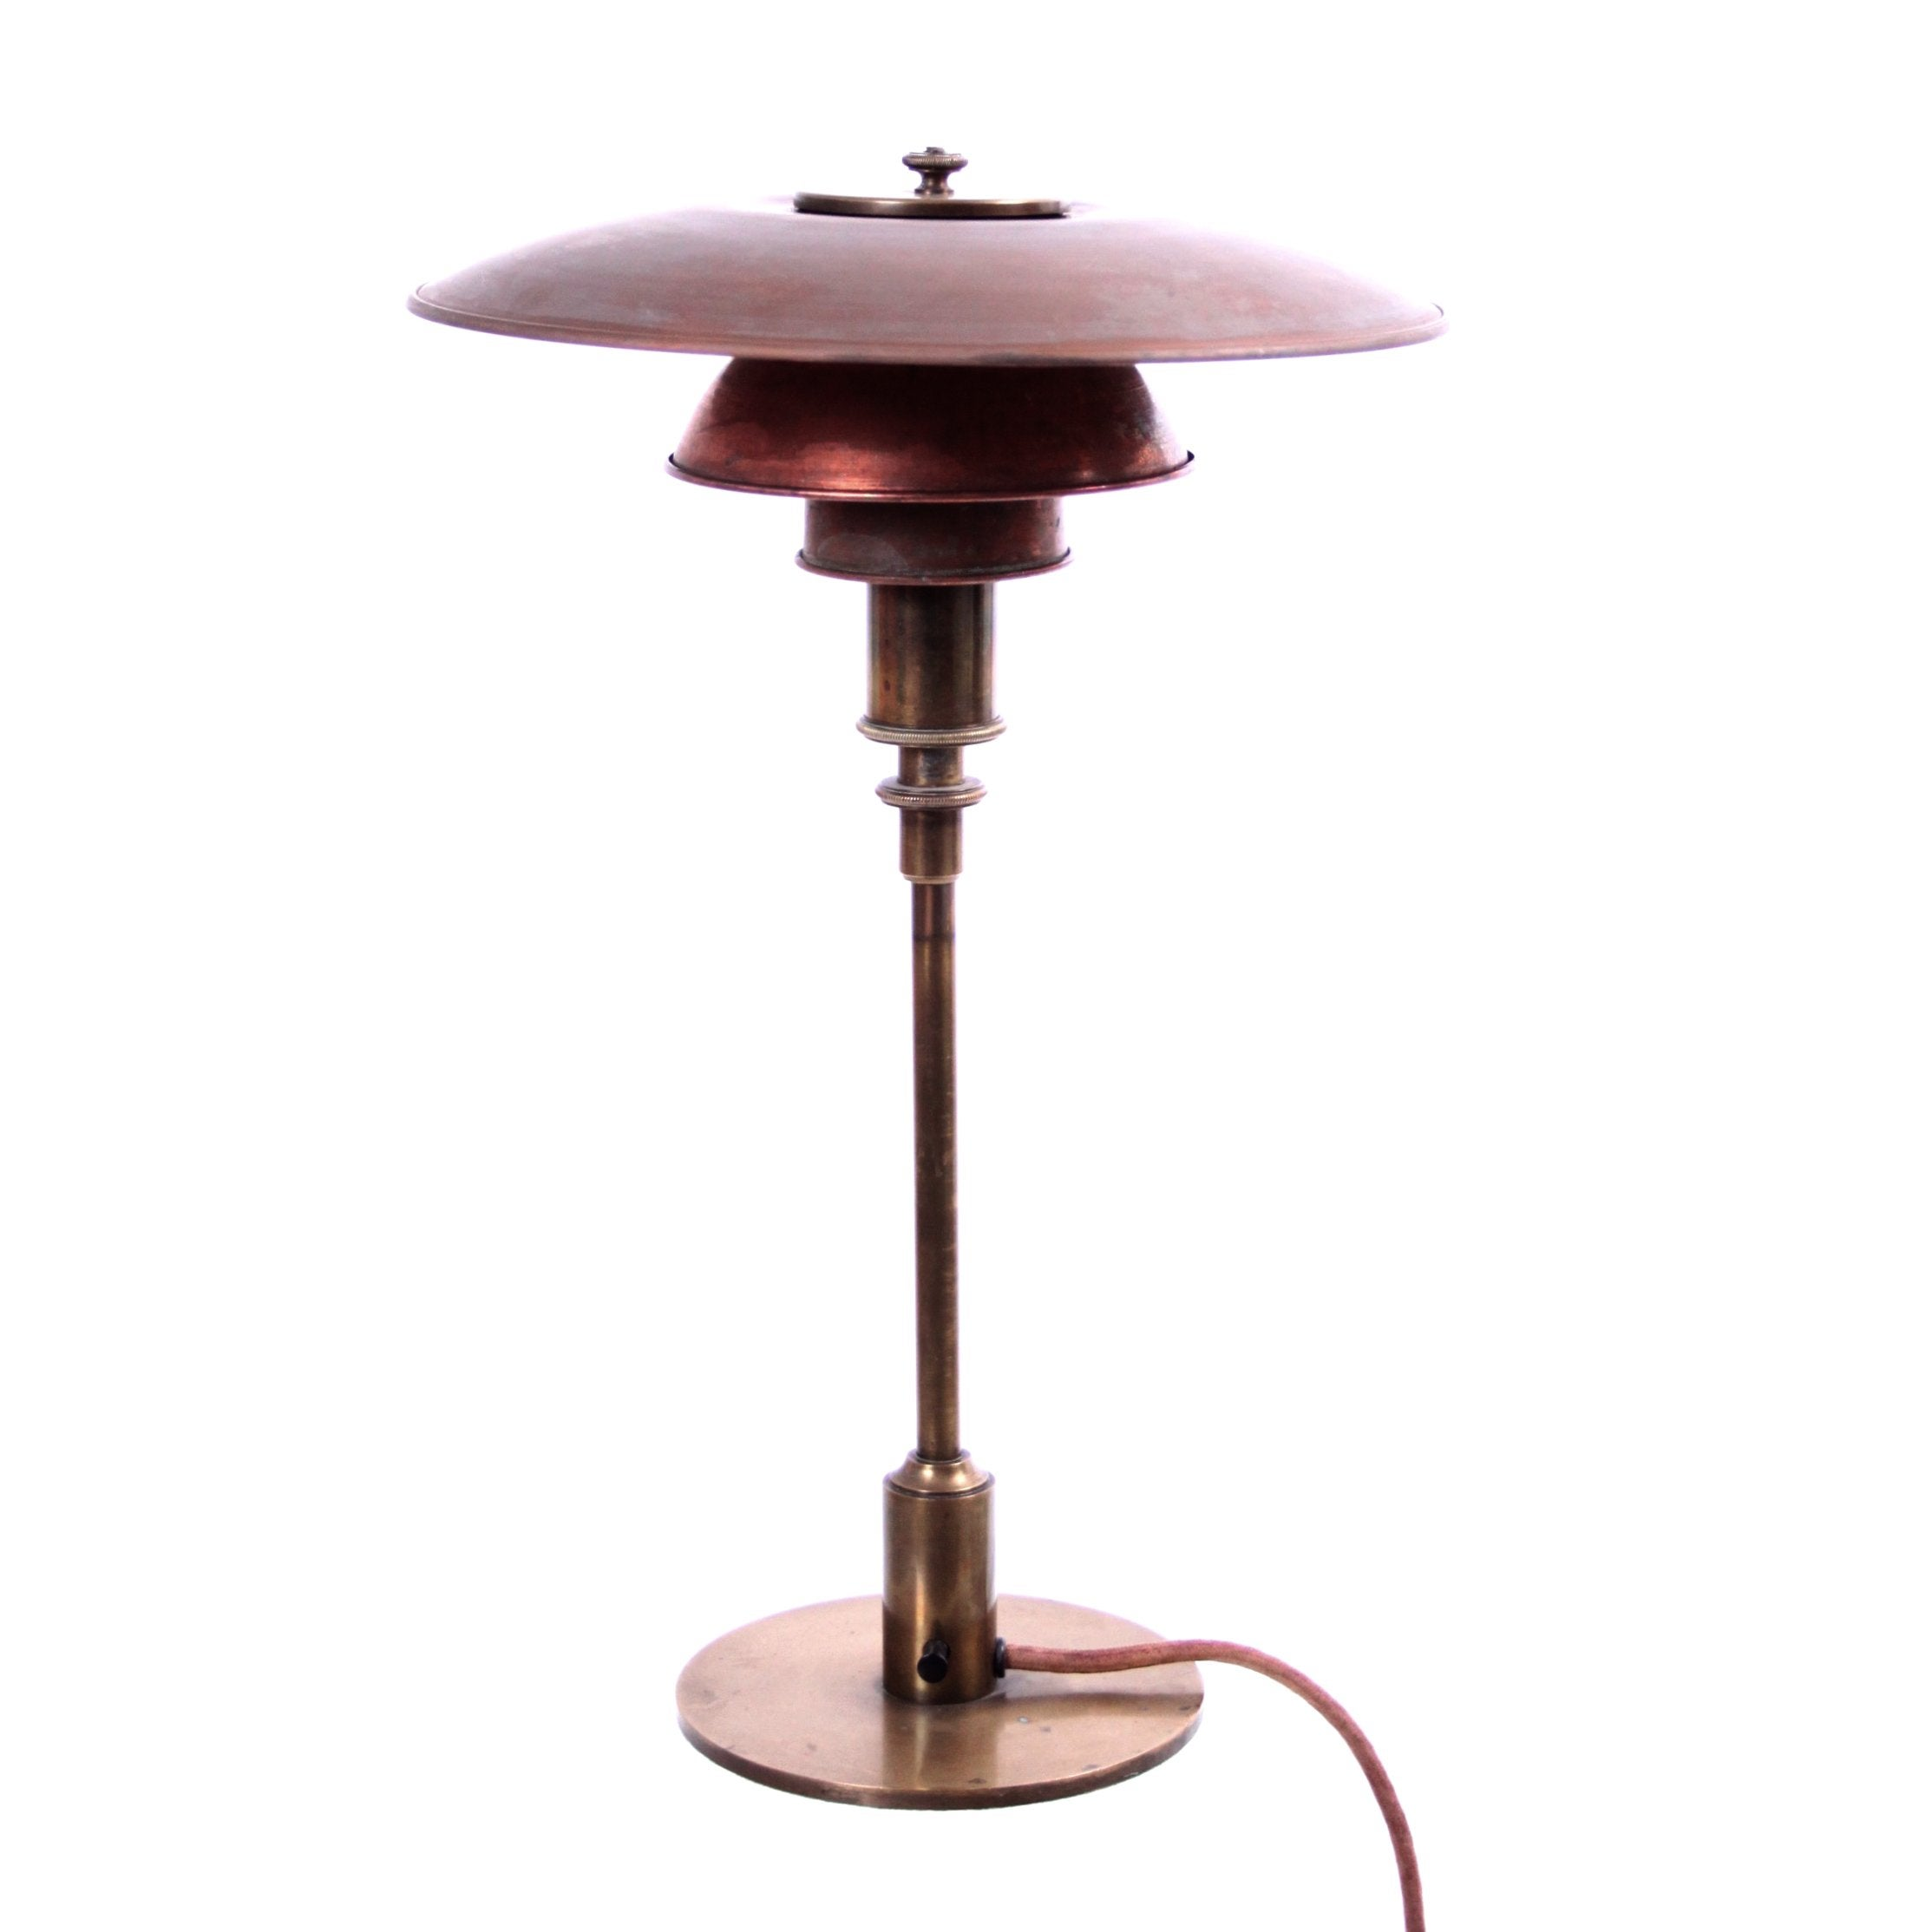 Poul Henningsen Lampe Early Poul Henningsen Table Lamp In Brass With Copper Shades 1927 1928